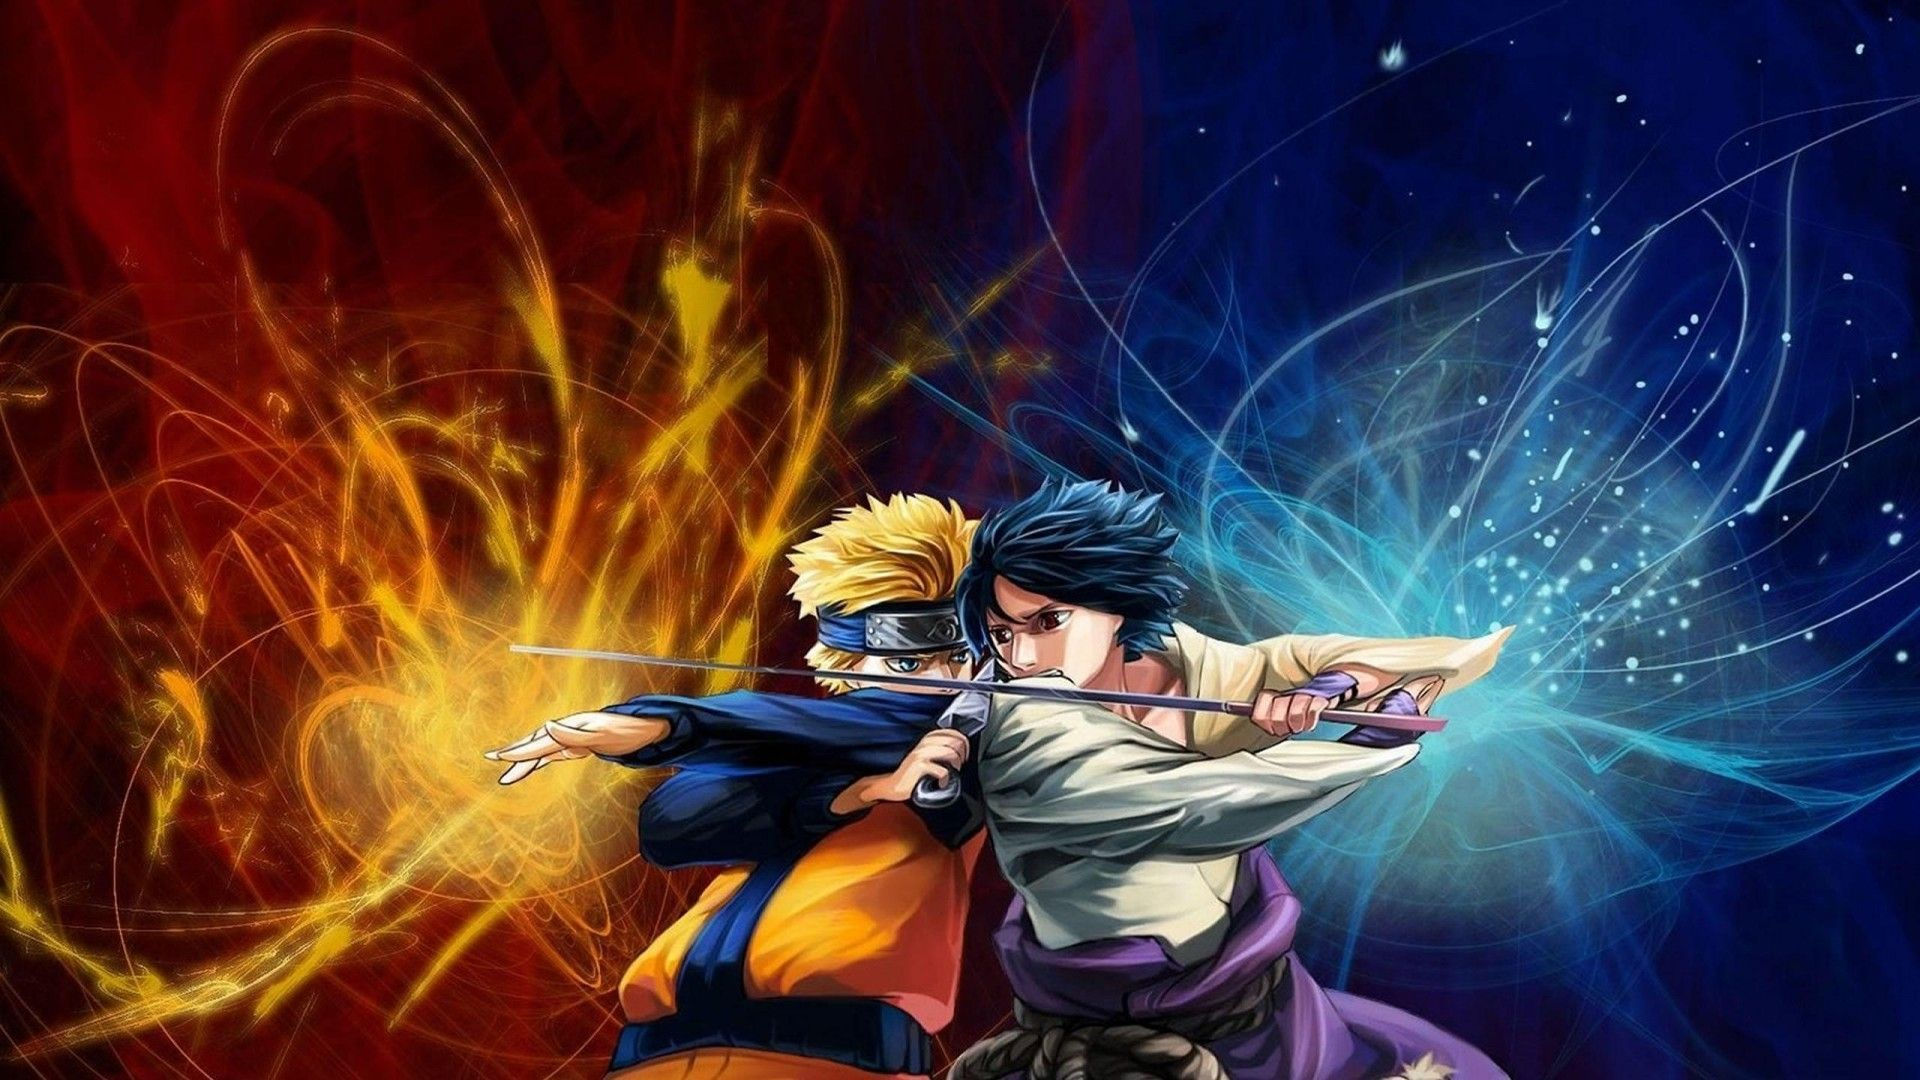 Naruto Wallpaper 1920x1080